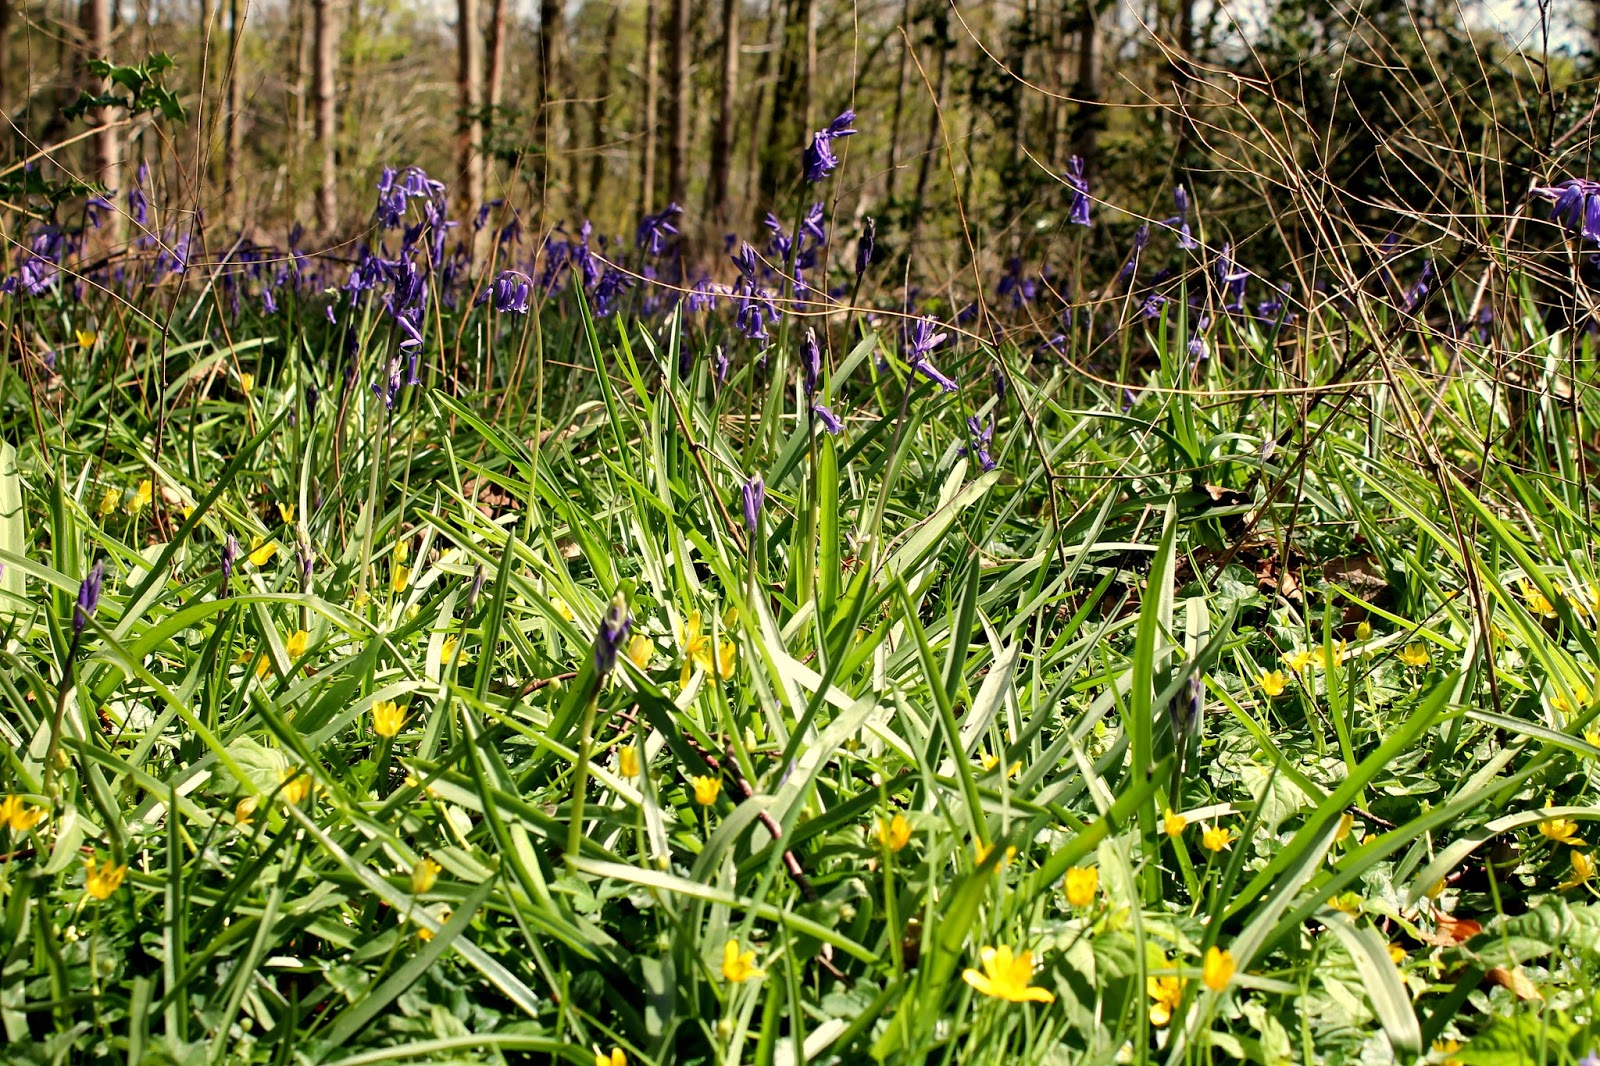 close up image of bluebells and buttercups